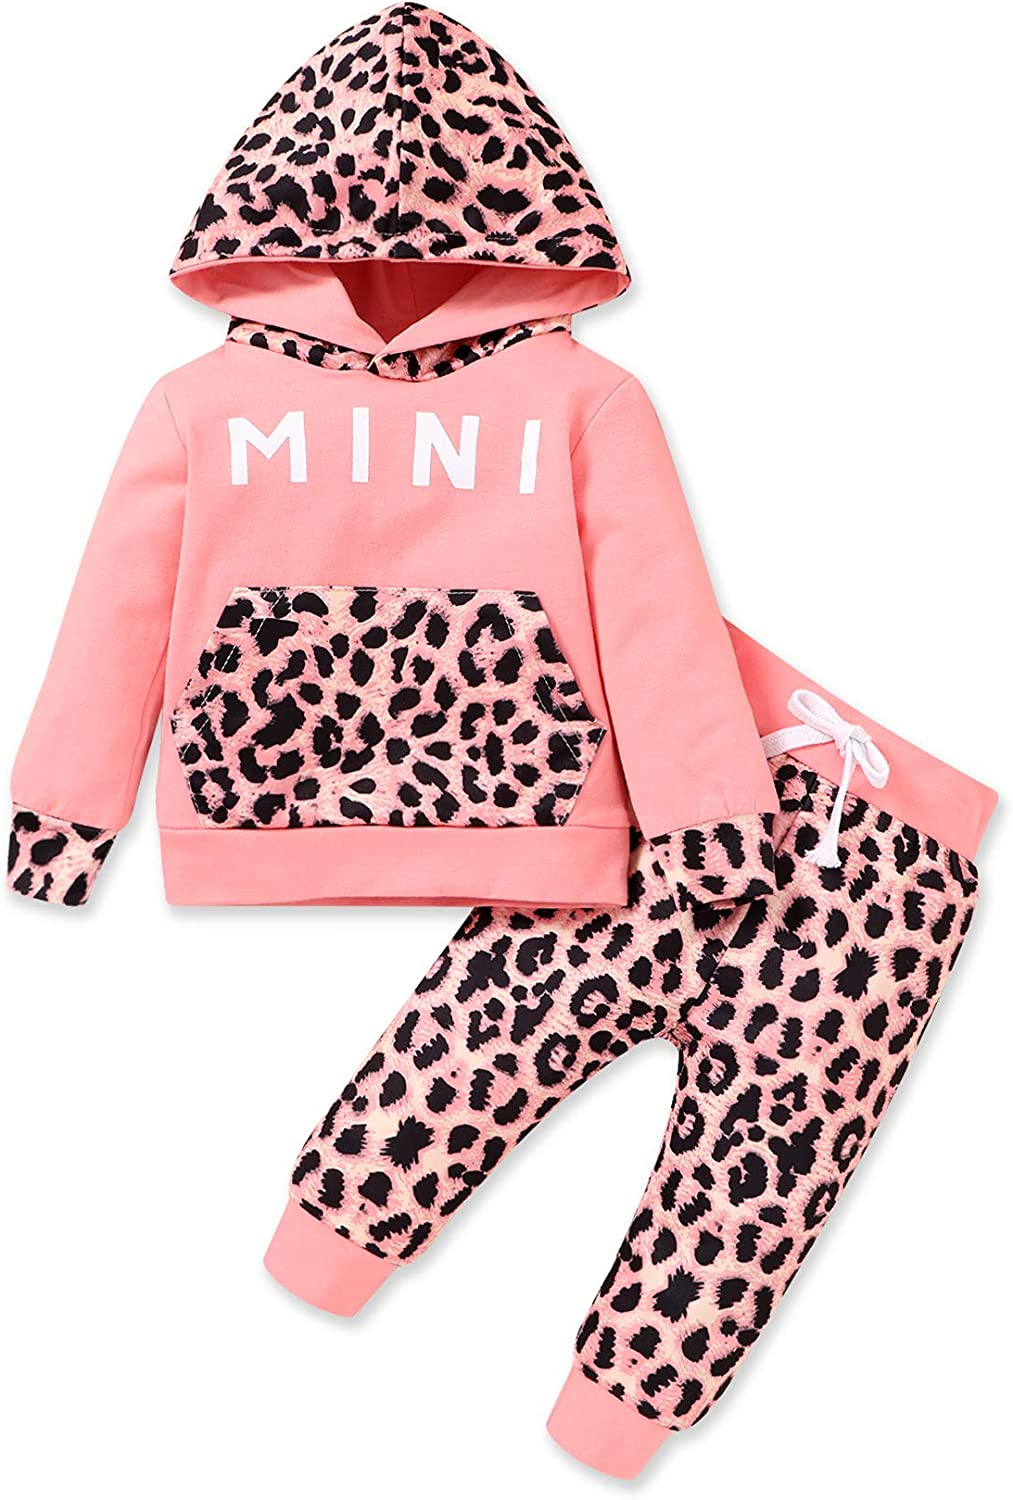 HAPPYMA Baby Boy Girl Clothes Letter Hoodie Sweatshirt Leopard Pants 2pcs Winter Outfits 0-24 Months